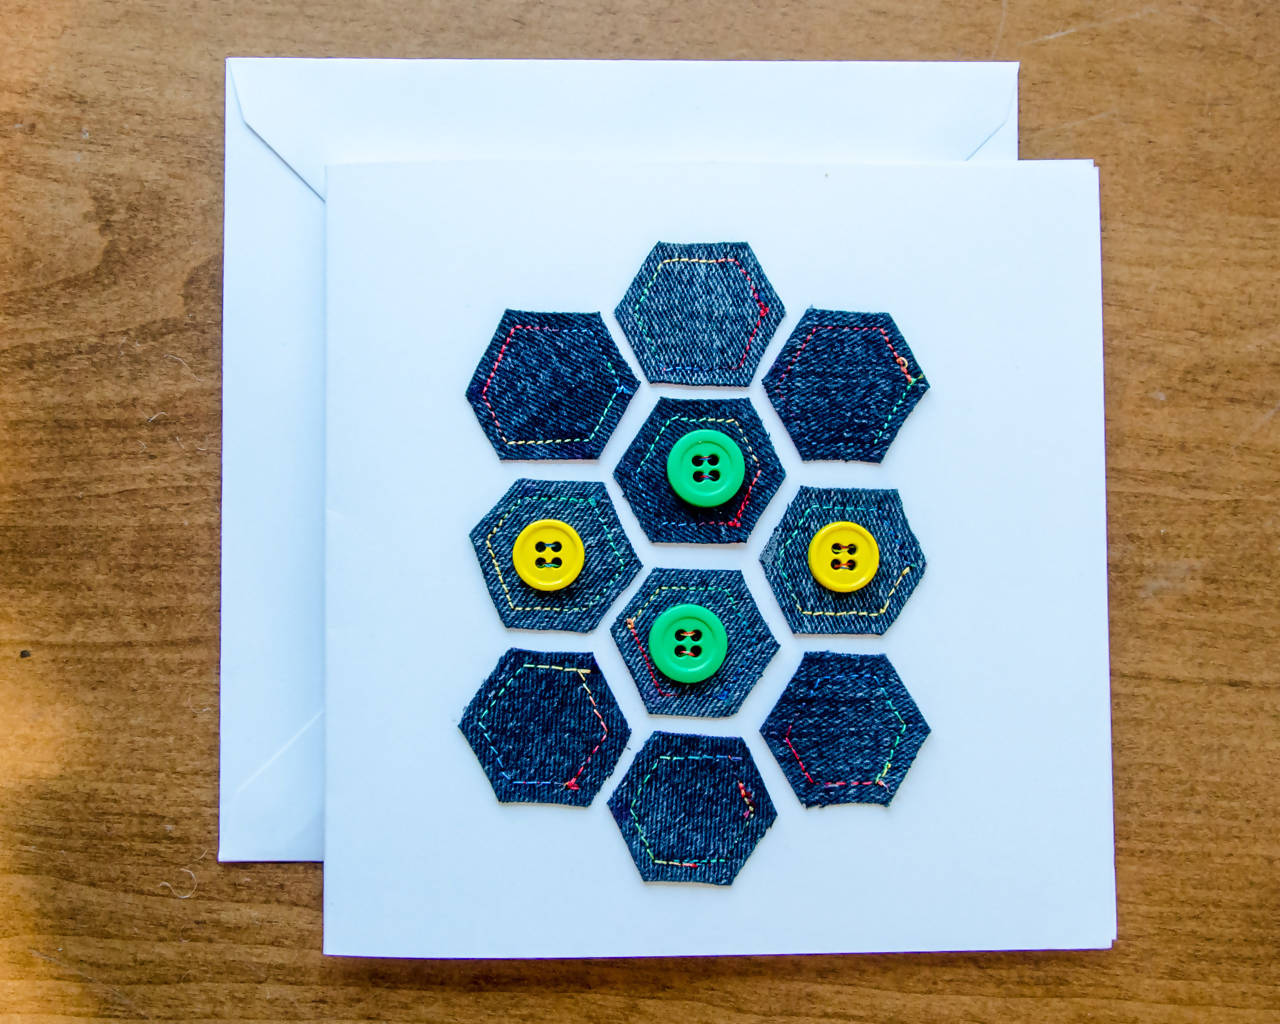 Denim Geometric shapes Greeting Card - Handmade - Fabric on Paper / Blank Inside for any occasion